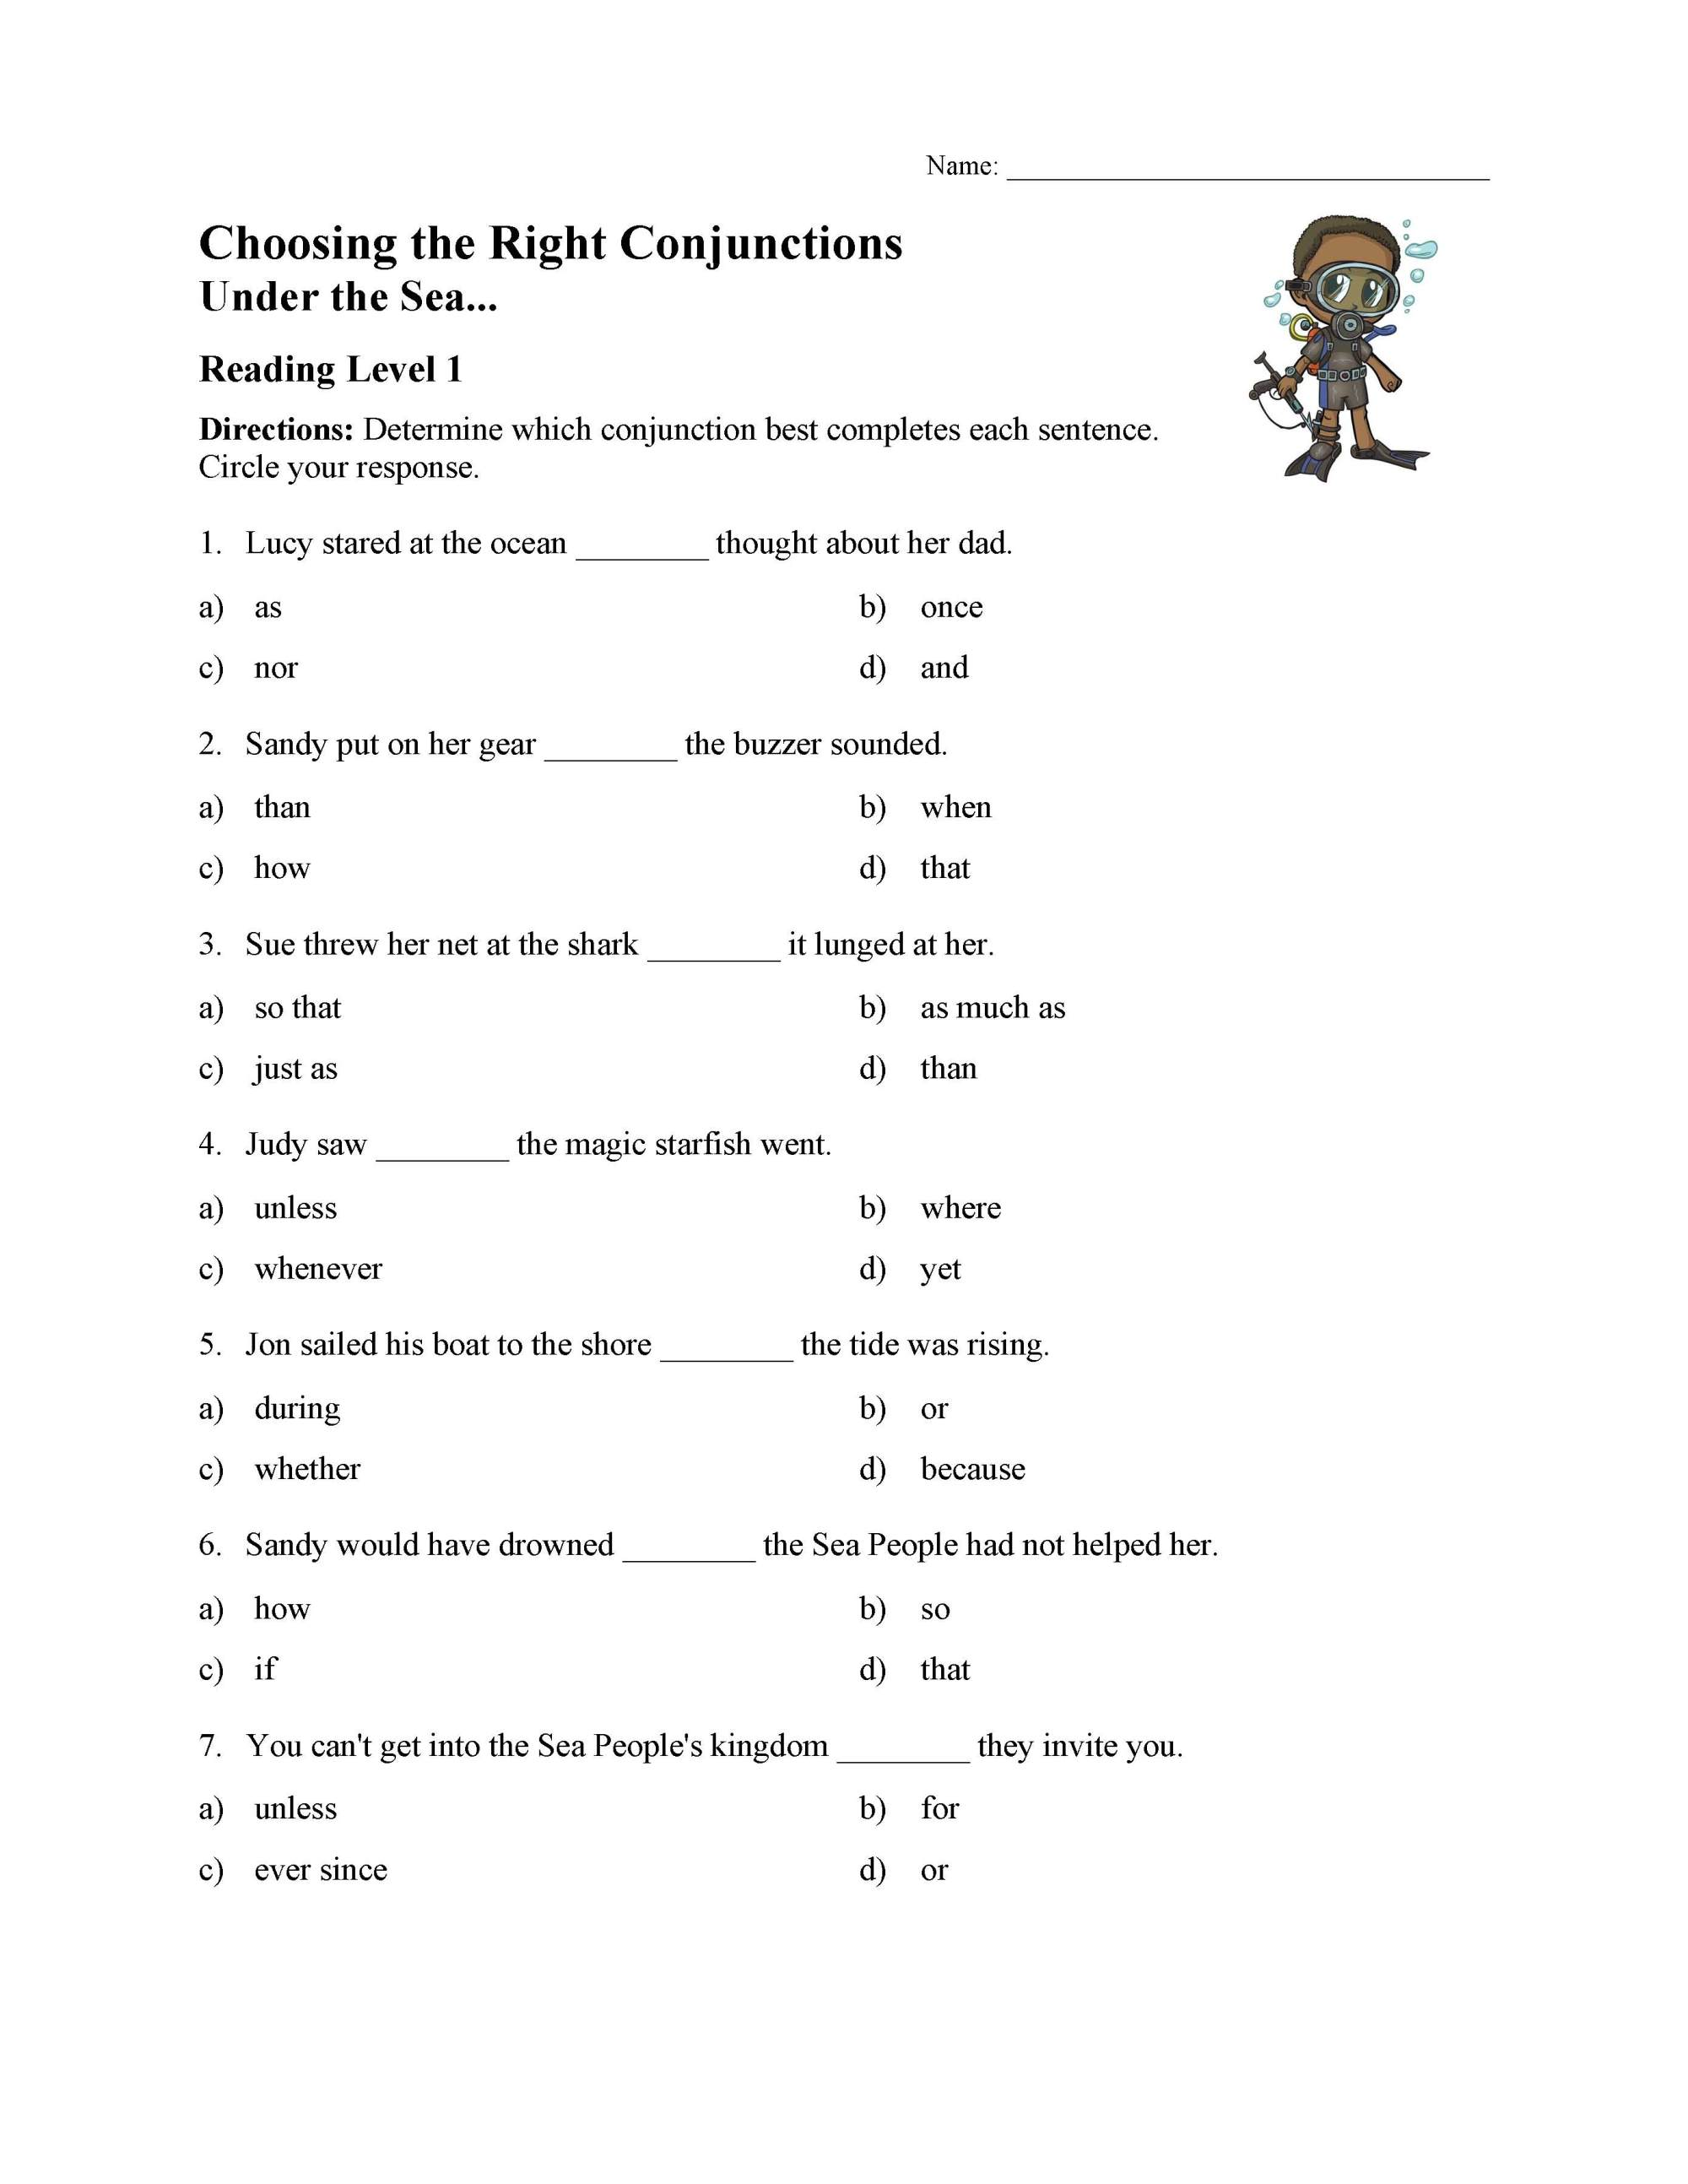 hight resolution of Choosing the Right Conjunction Worksheet - Reading Level 1   Preview